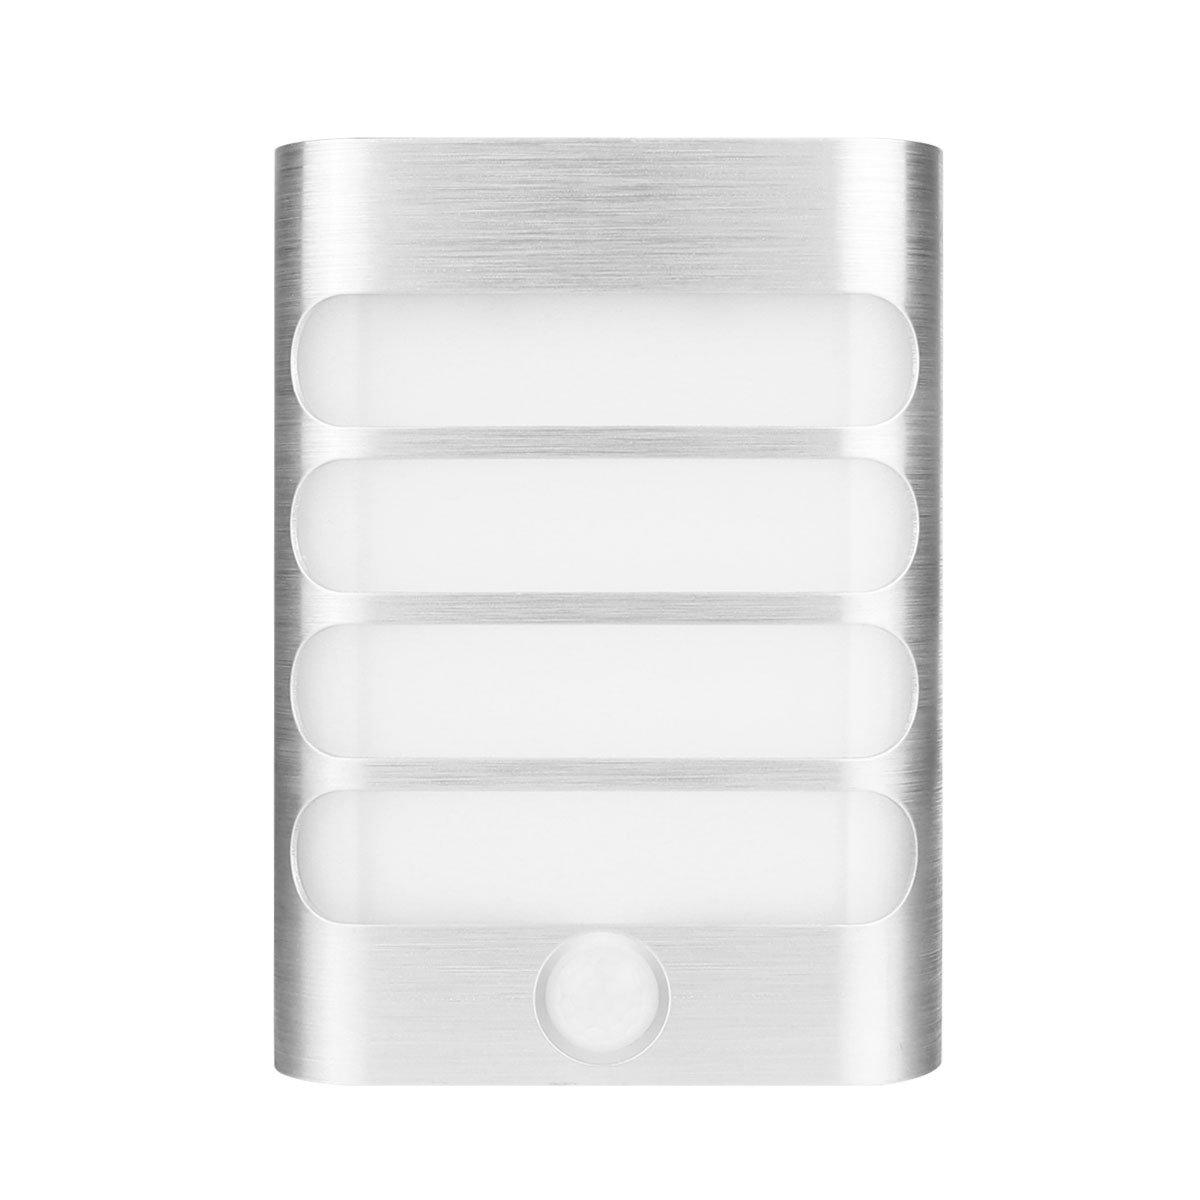 Powstro Morden LED Wall Light Stainless Steel Indoor Rechargeable Wireless Wall Sconce Lantern Sensor Night Light for Home,Bedroom,Garden(Warm white)